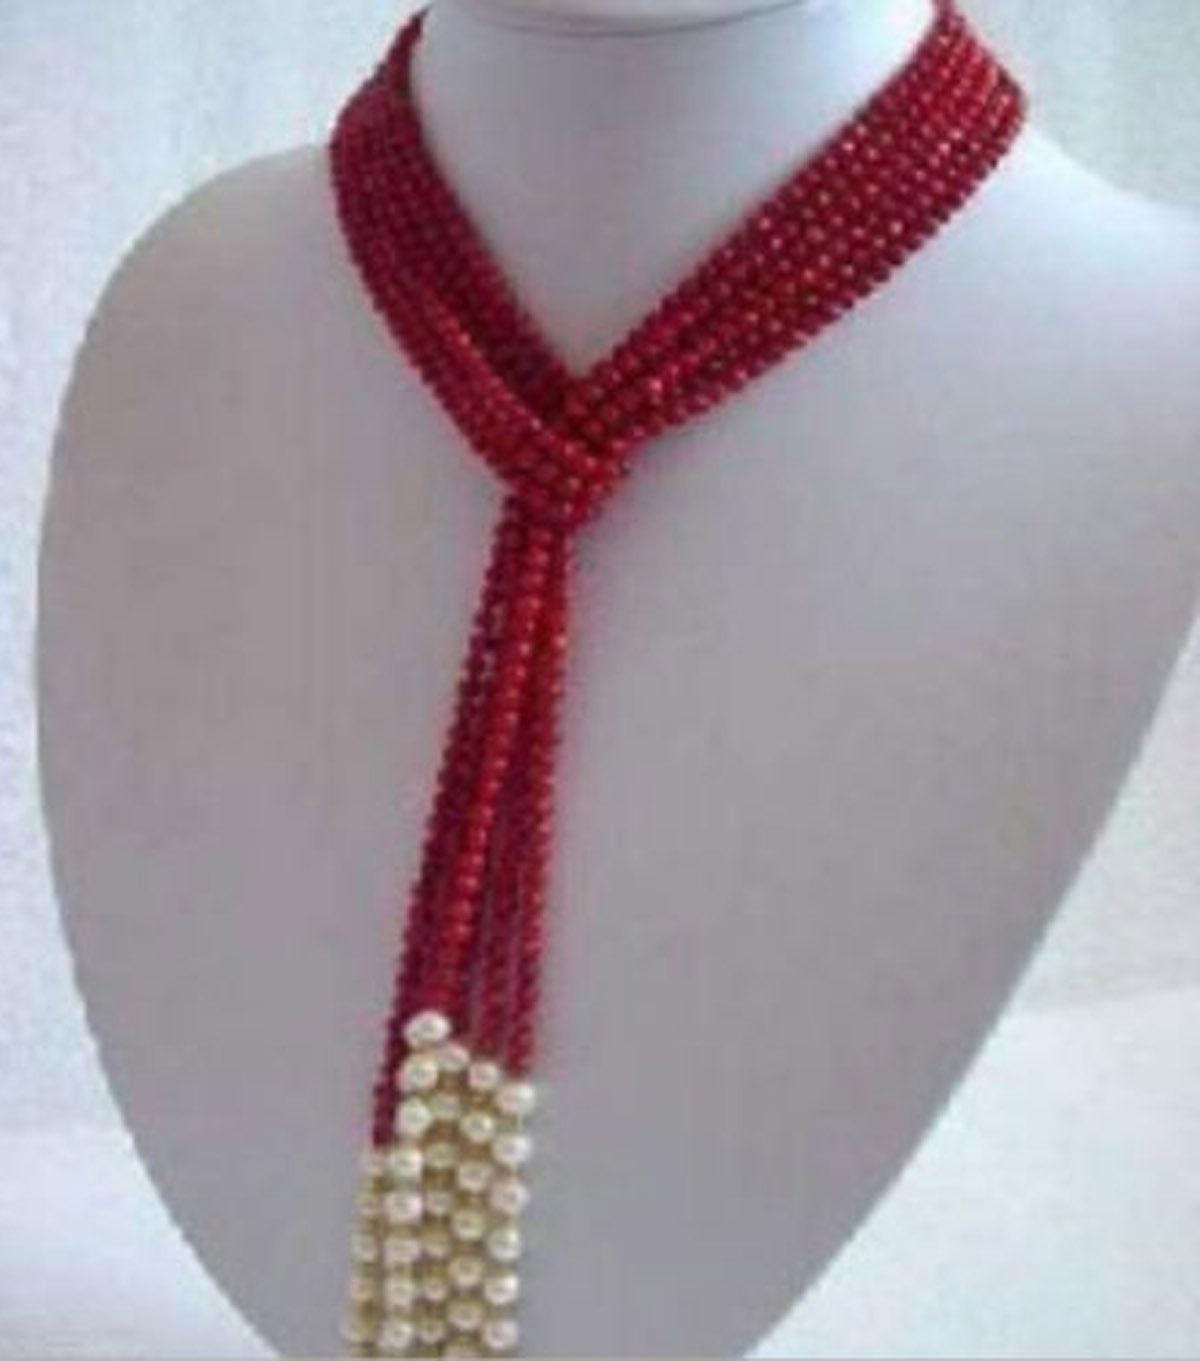 AAA50 inches Beautiful 3 strands 4 MM Red Coral & White Pear